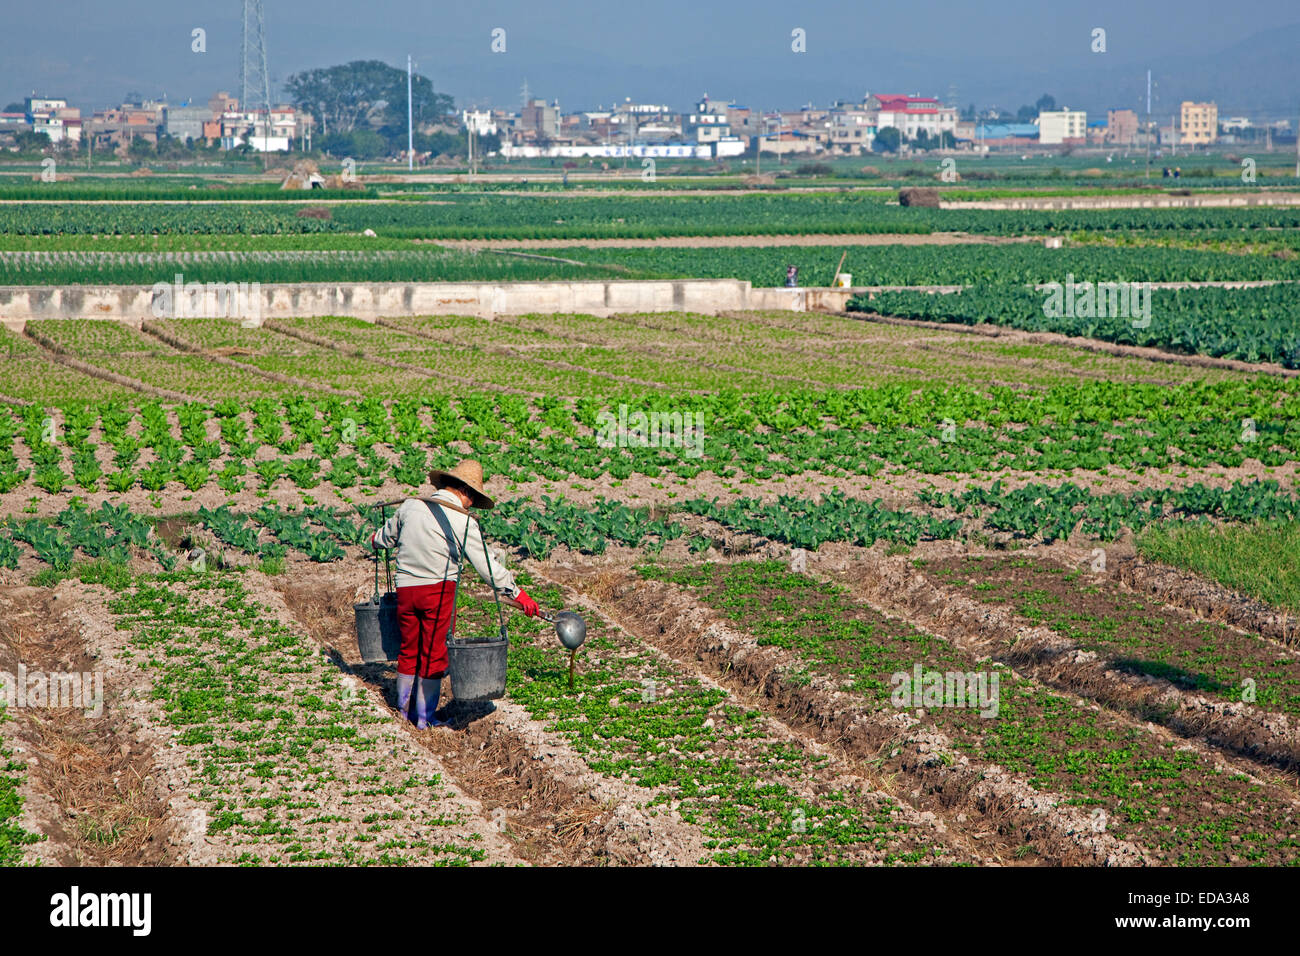 Chinese farmer fertilising crop by pouring out liquid manure from buckets by hand, Yunnan province, China Stock Photo